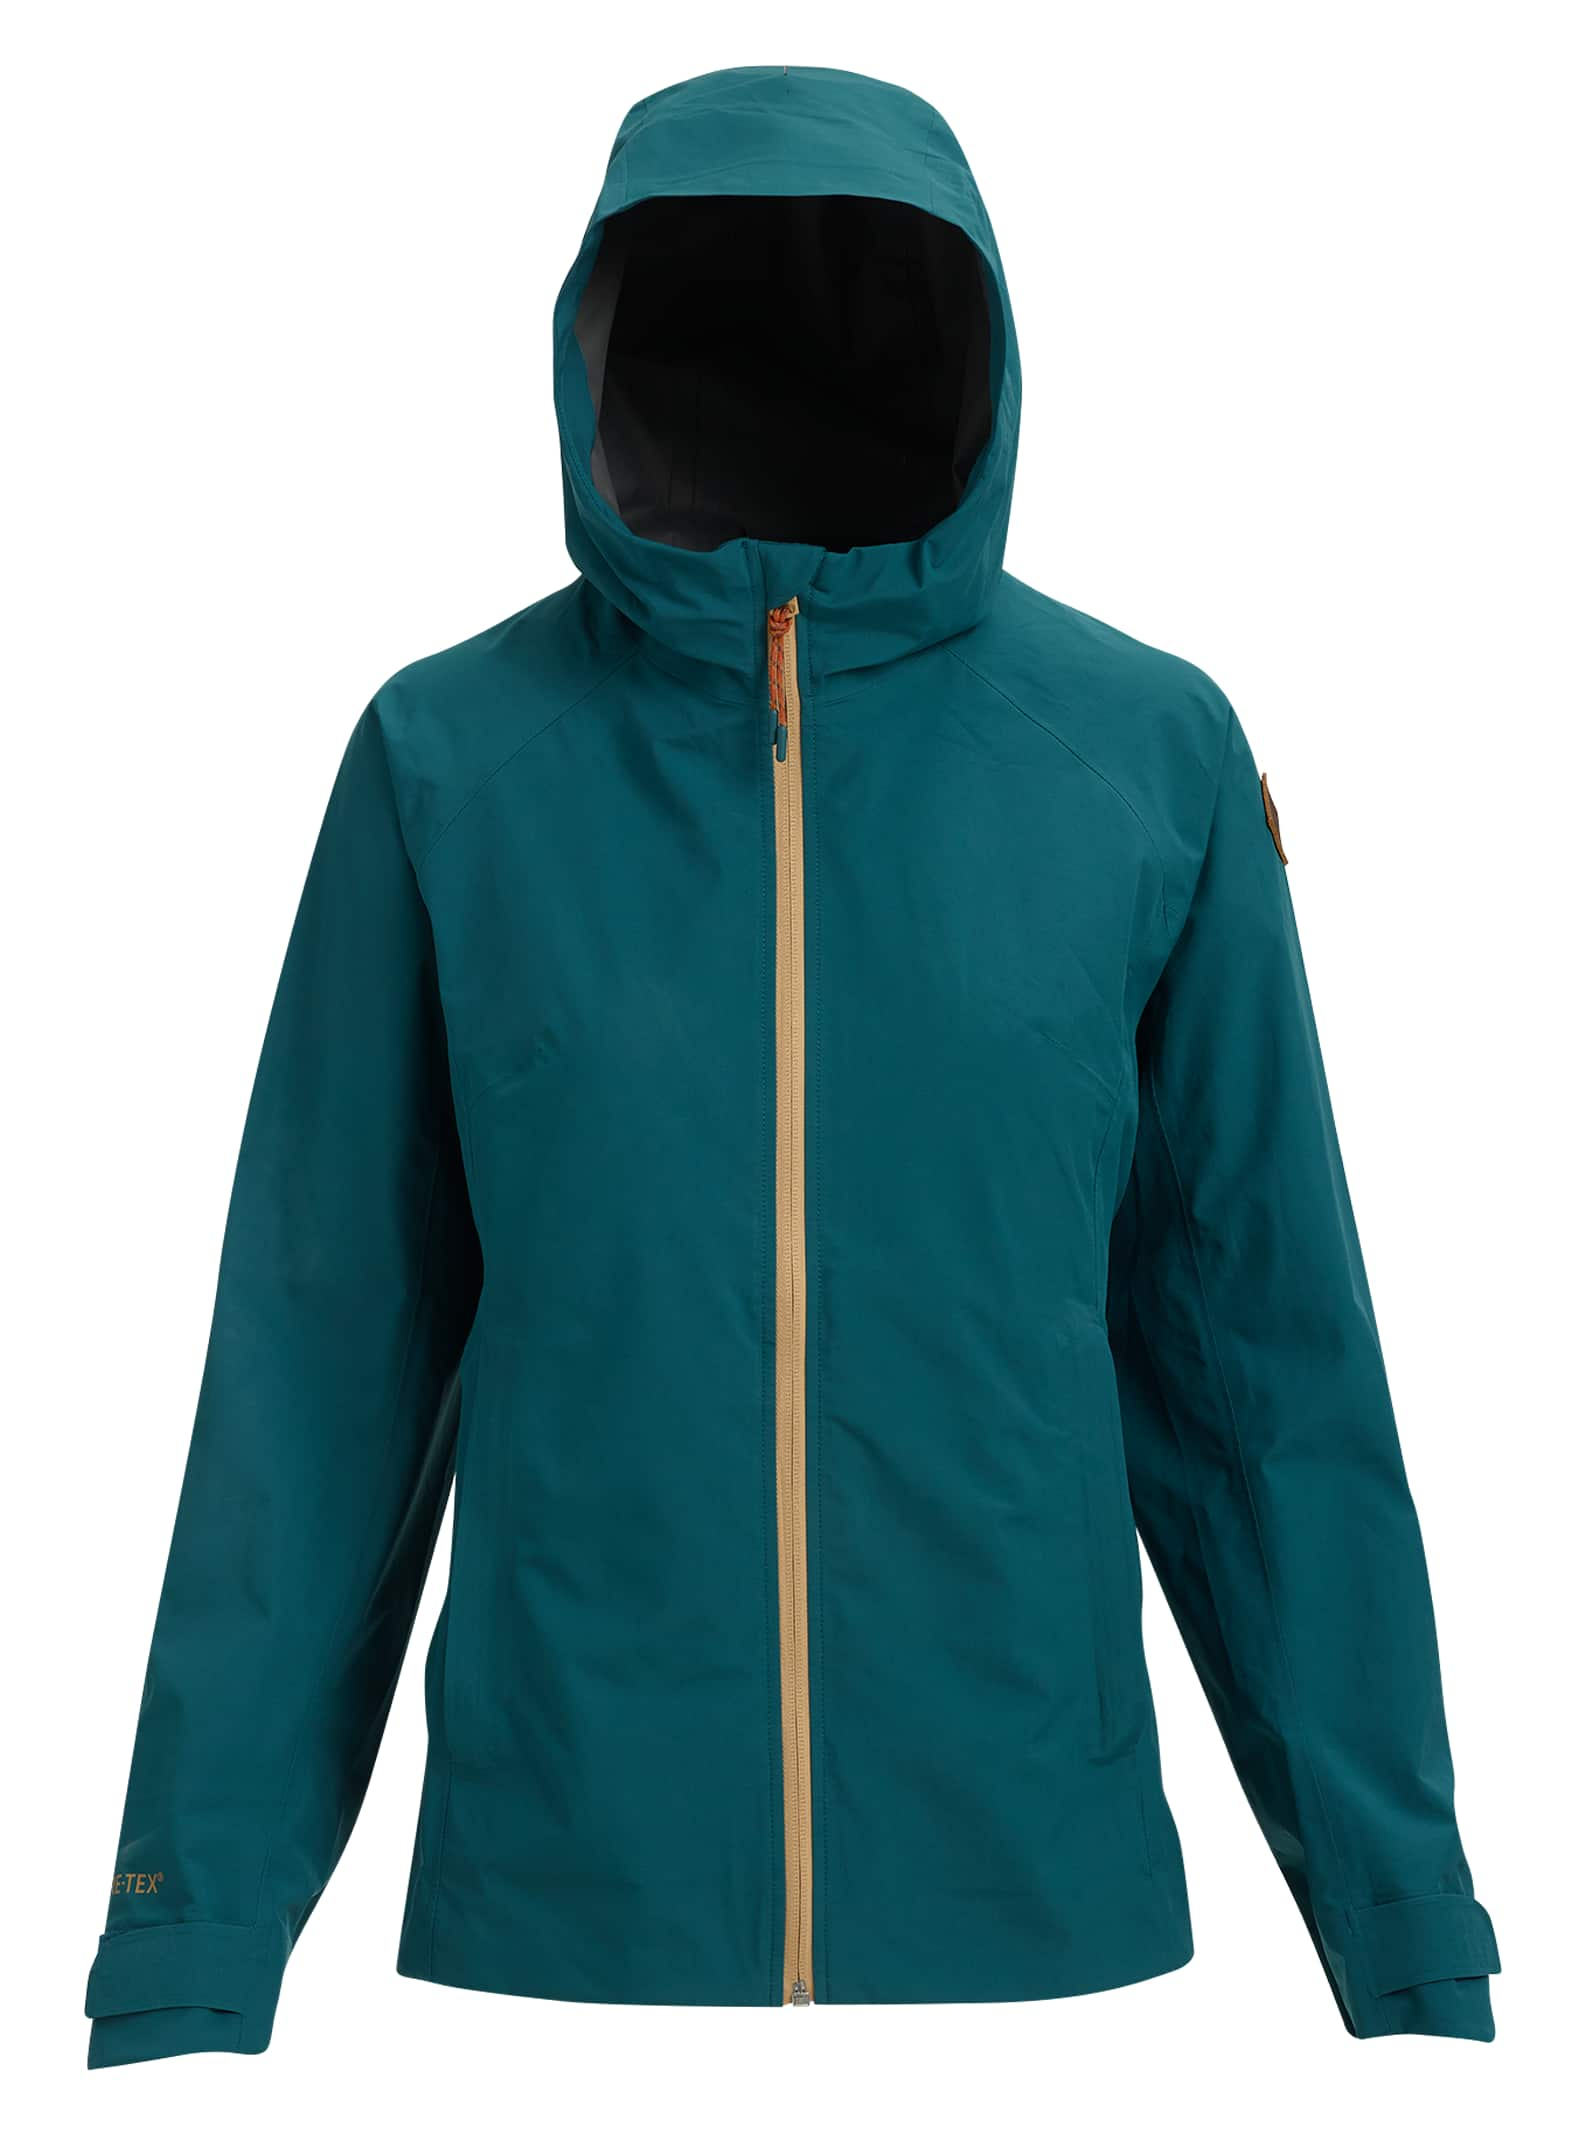 Women's Burton GORE-TEX Packrite Rain Jacket